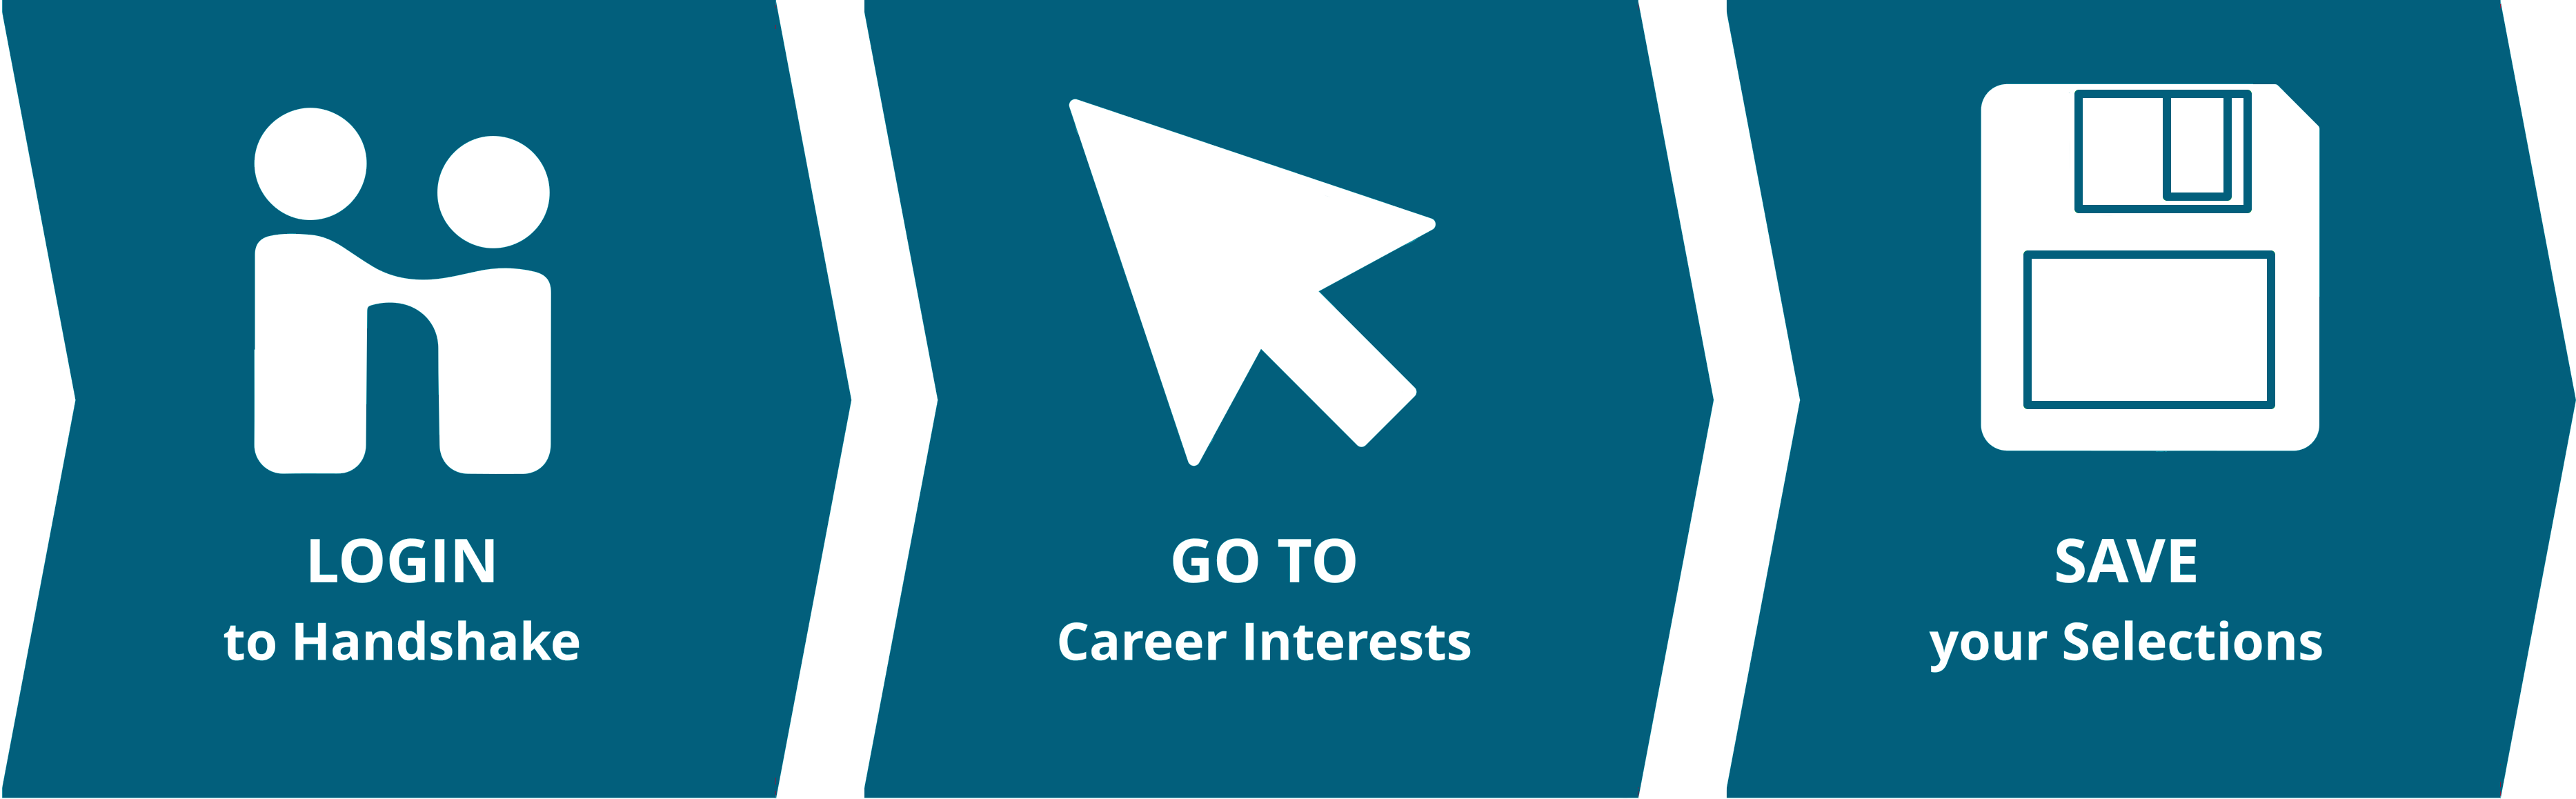 Login to Handshake, Go to Career Interests, Save Your Selections